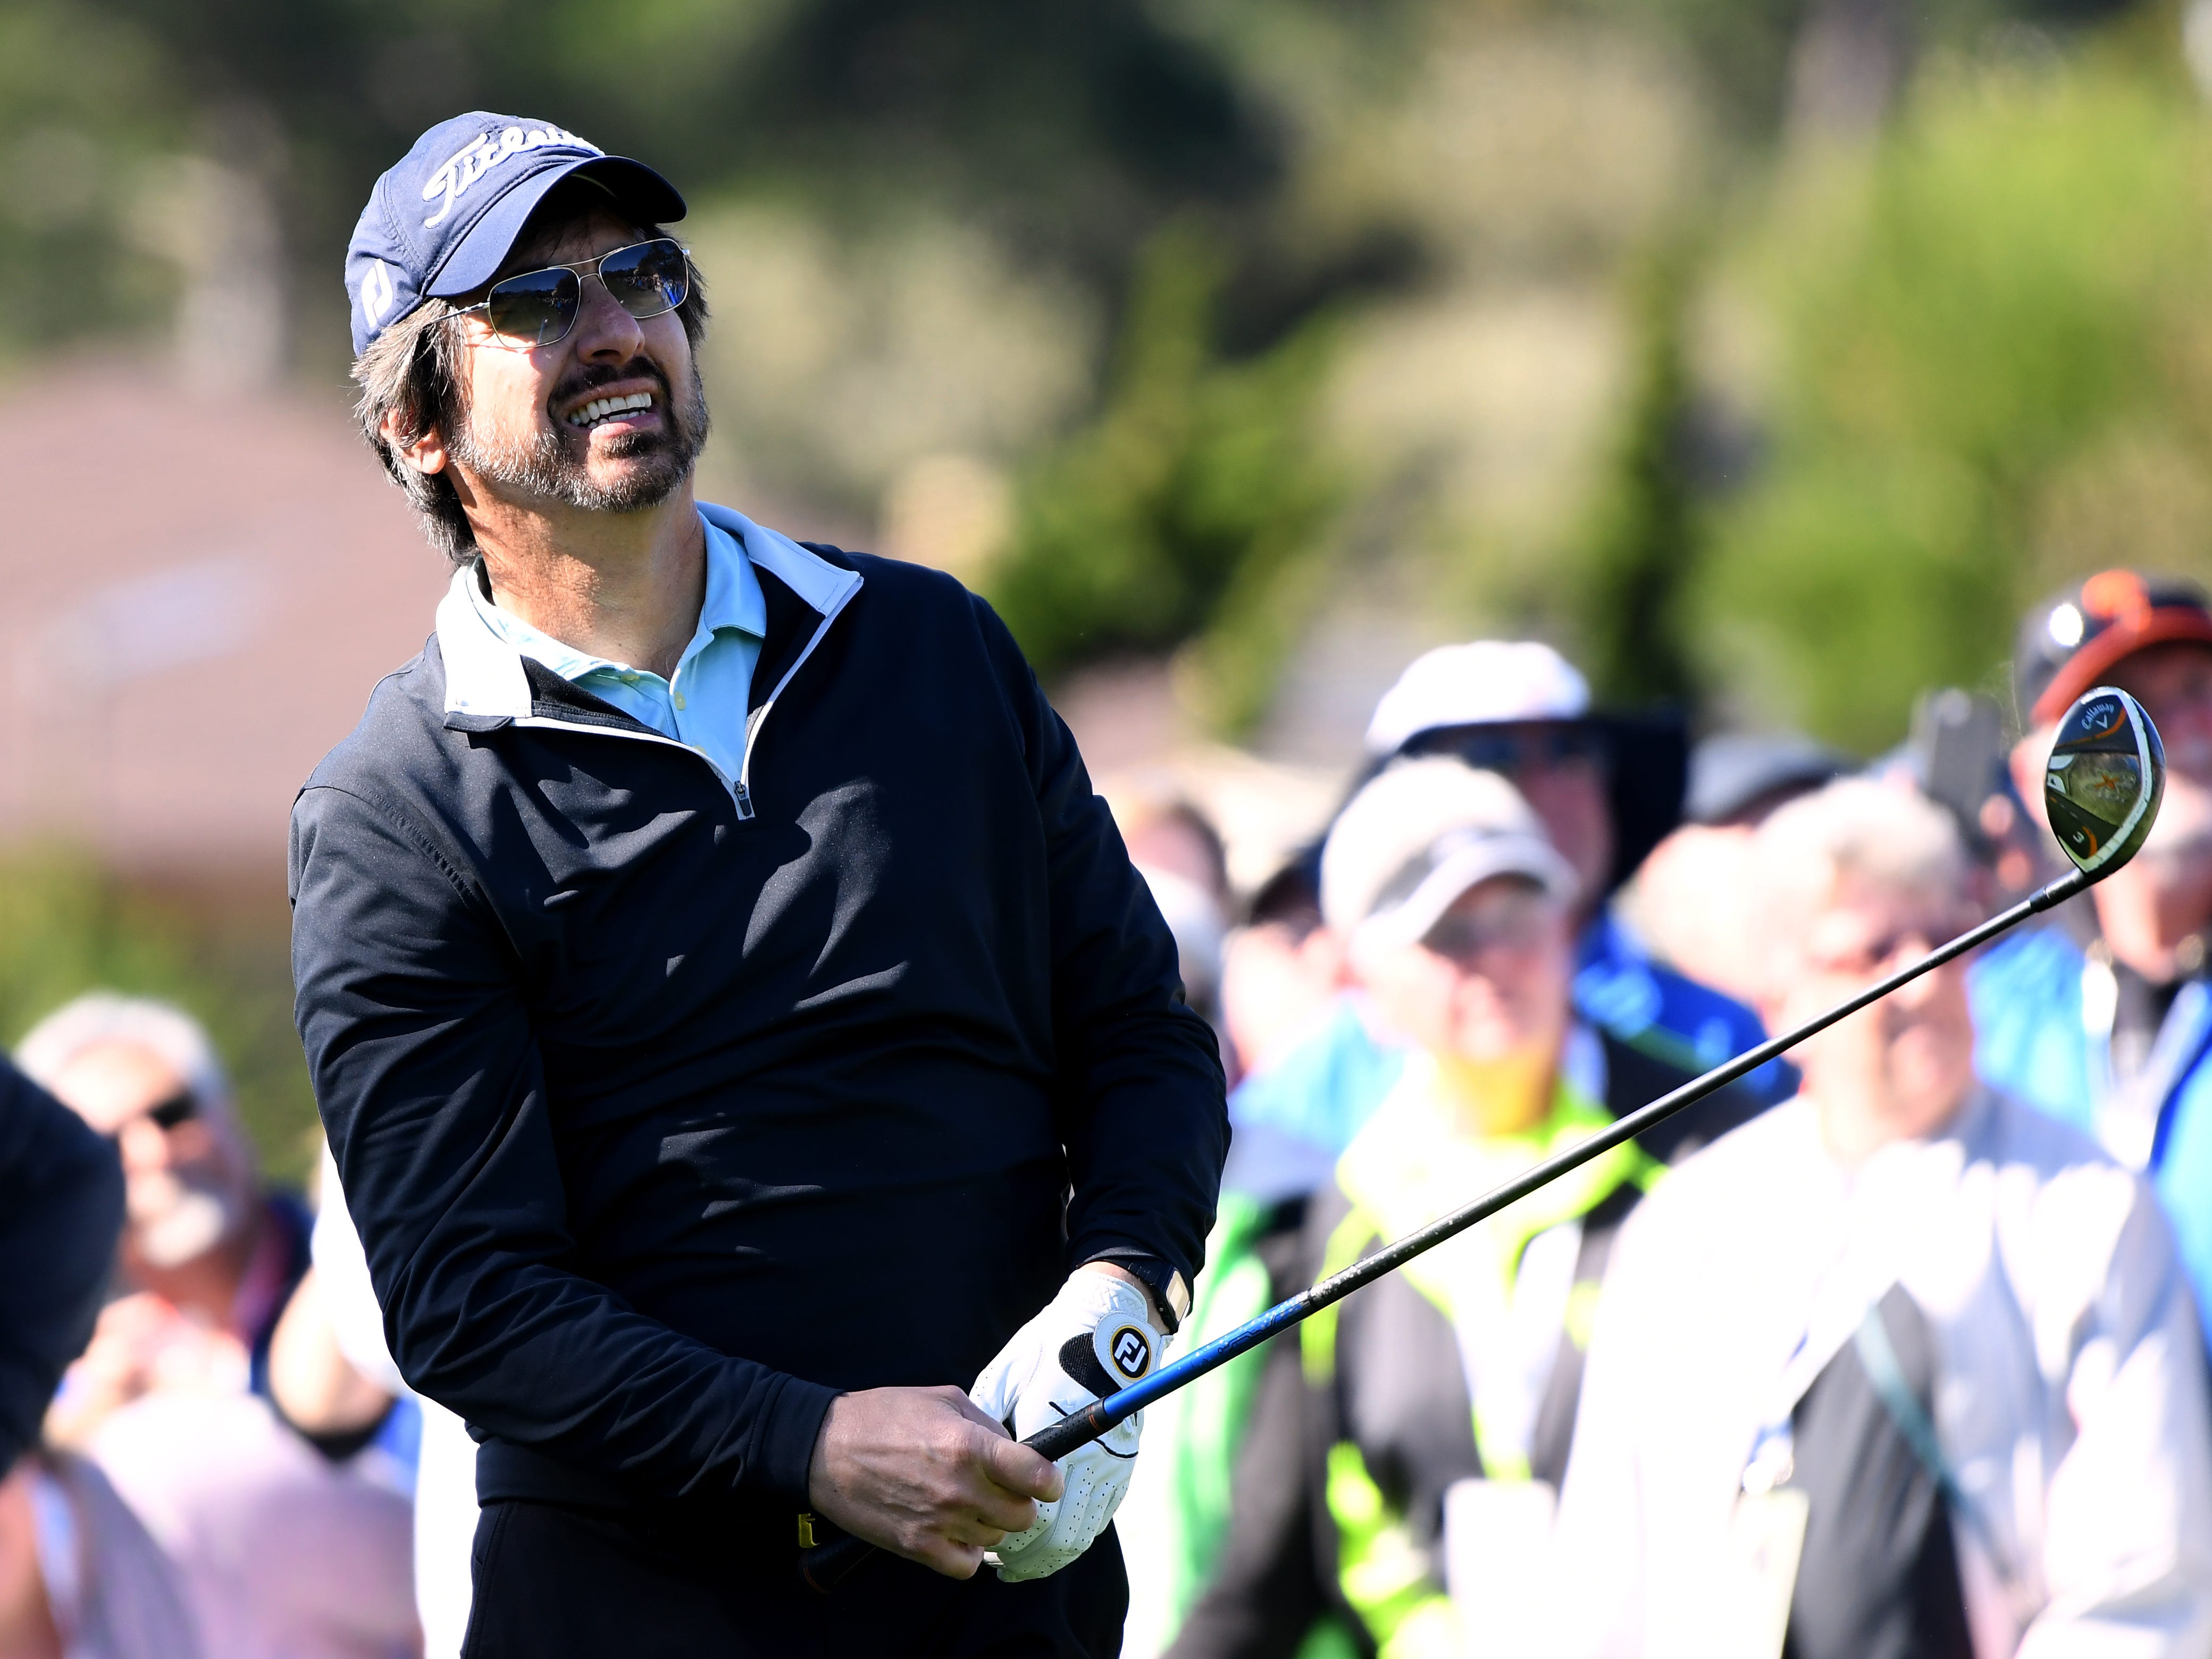 Ray Romano reacts to his shot on the first tee during the 3M Celebrity Challenge at the AT&T Pebble Beach Pro-Am.